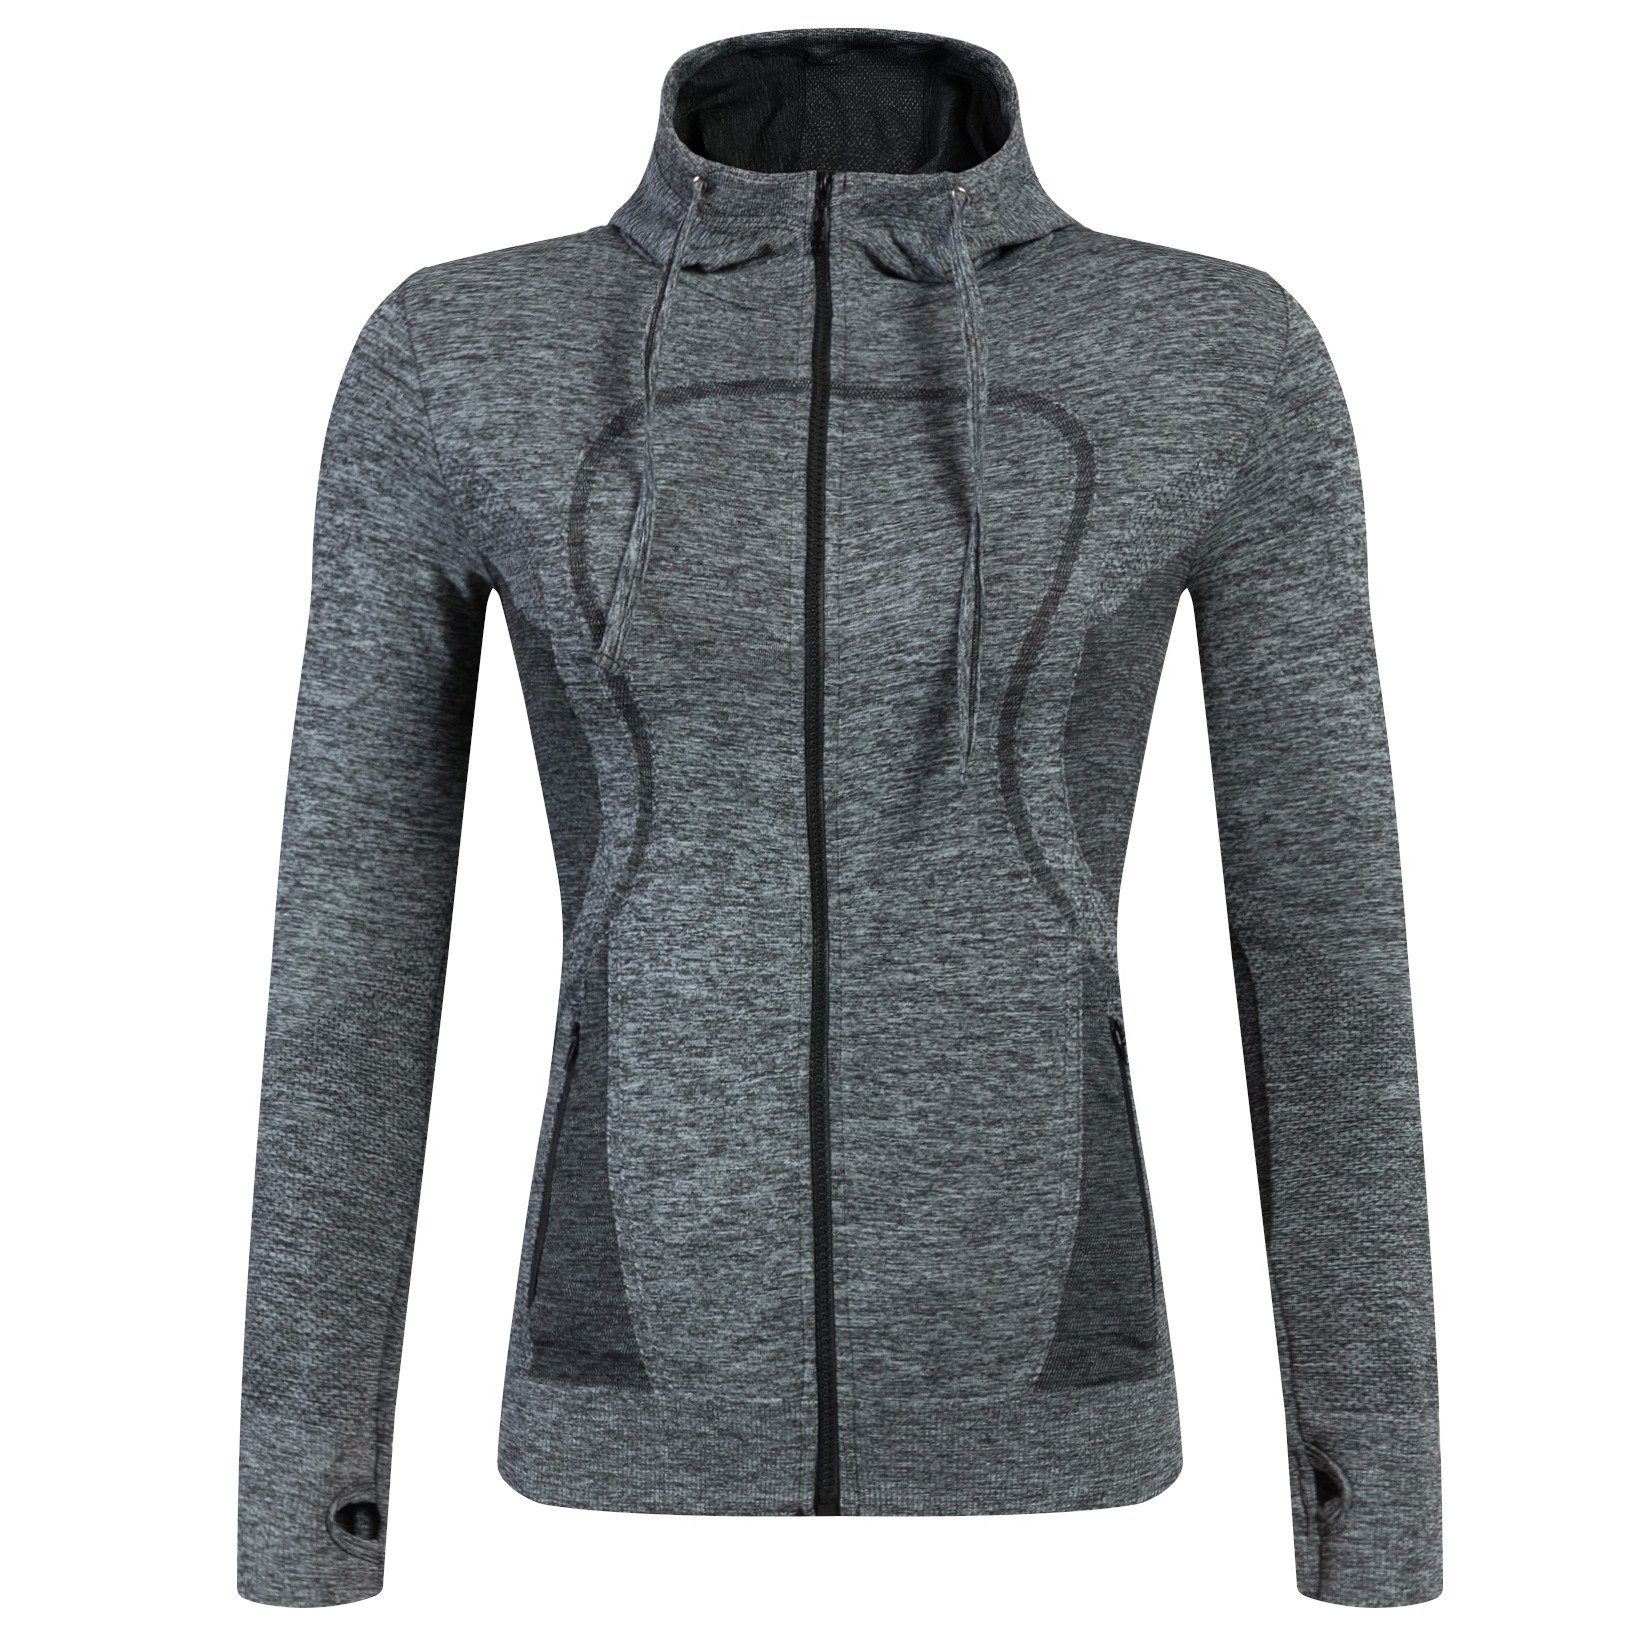 AMZSPORT Womens Running Jacket Long Sleeve Sports Gym Hoodies Yoga Fitness Top with Pockets